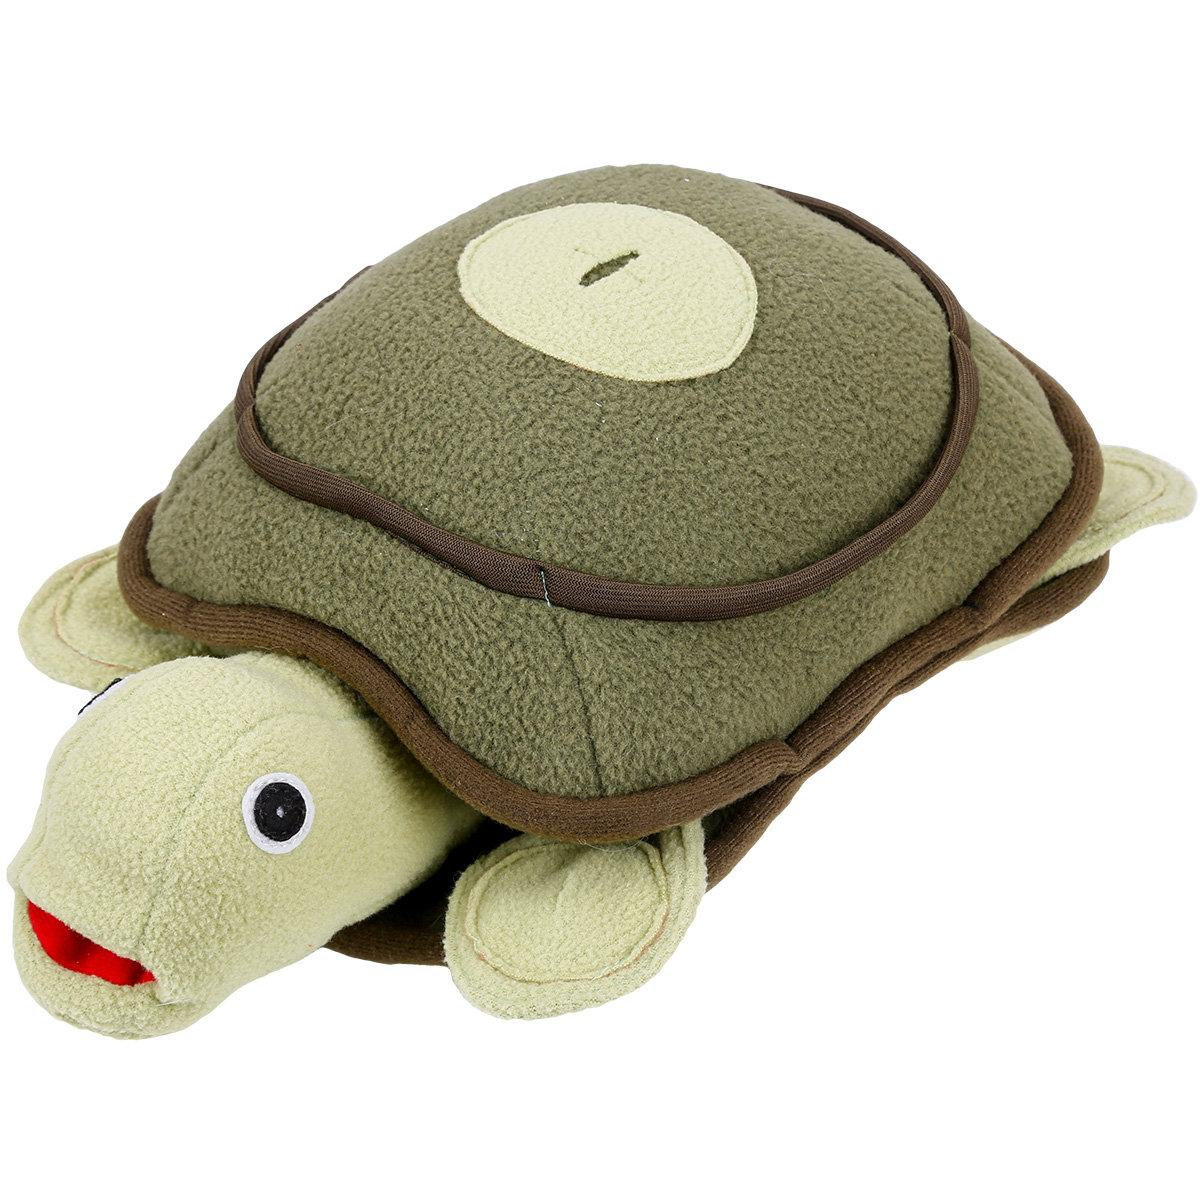 Turtle Snuffle / Snuggle Toy | Challenge Level 1